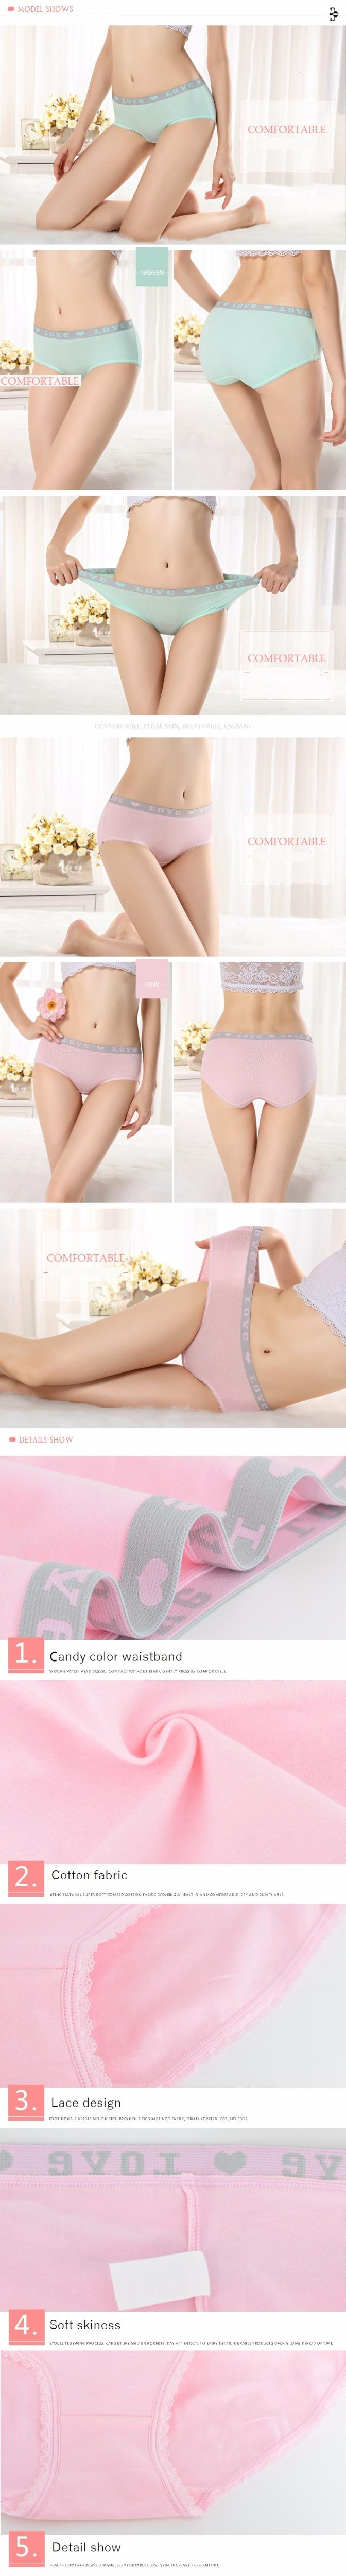 Anti Bacterial 100% Cotton Intimates Solid Sexy Briefs Women Underwear Natural Color Comfortable Women Push Up Panties